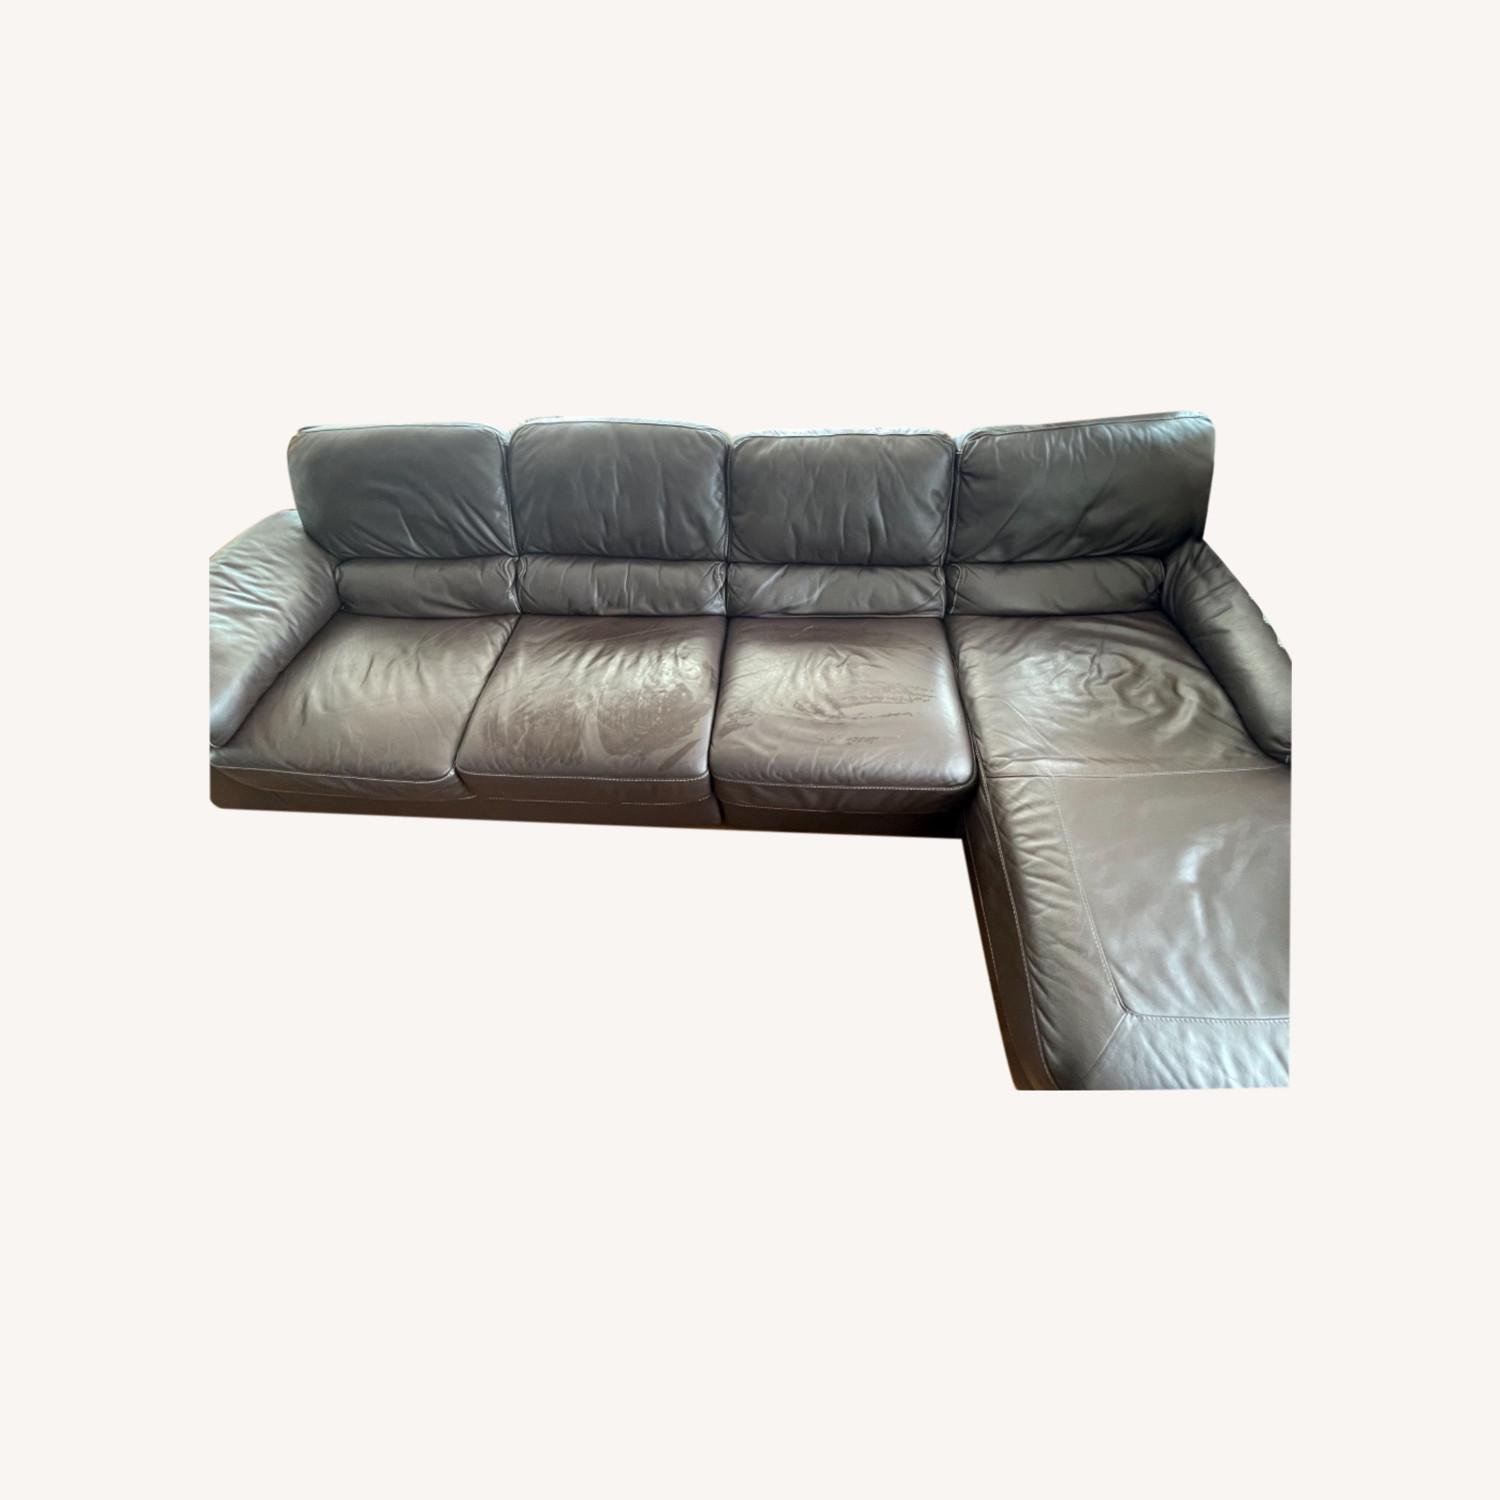 Raymour & Flanigan Brown Leather Four Seat Sectional - image-0